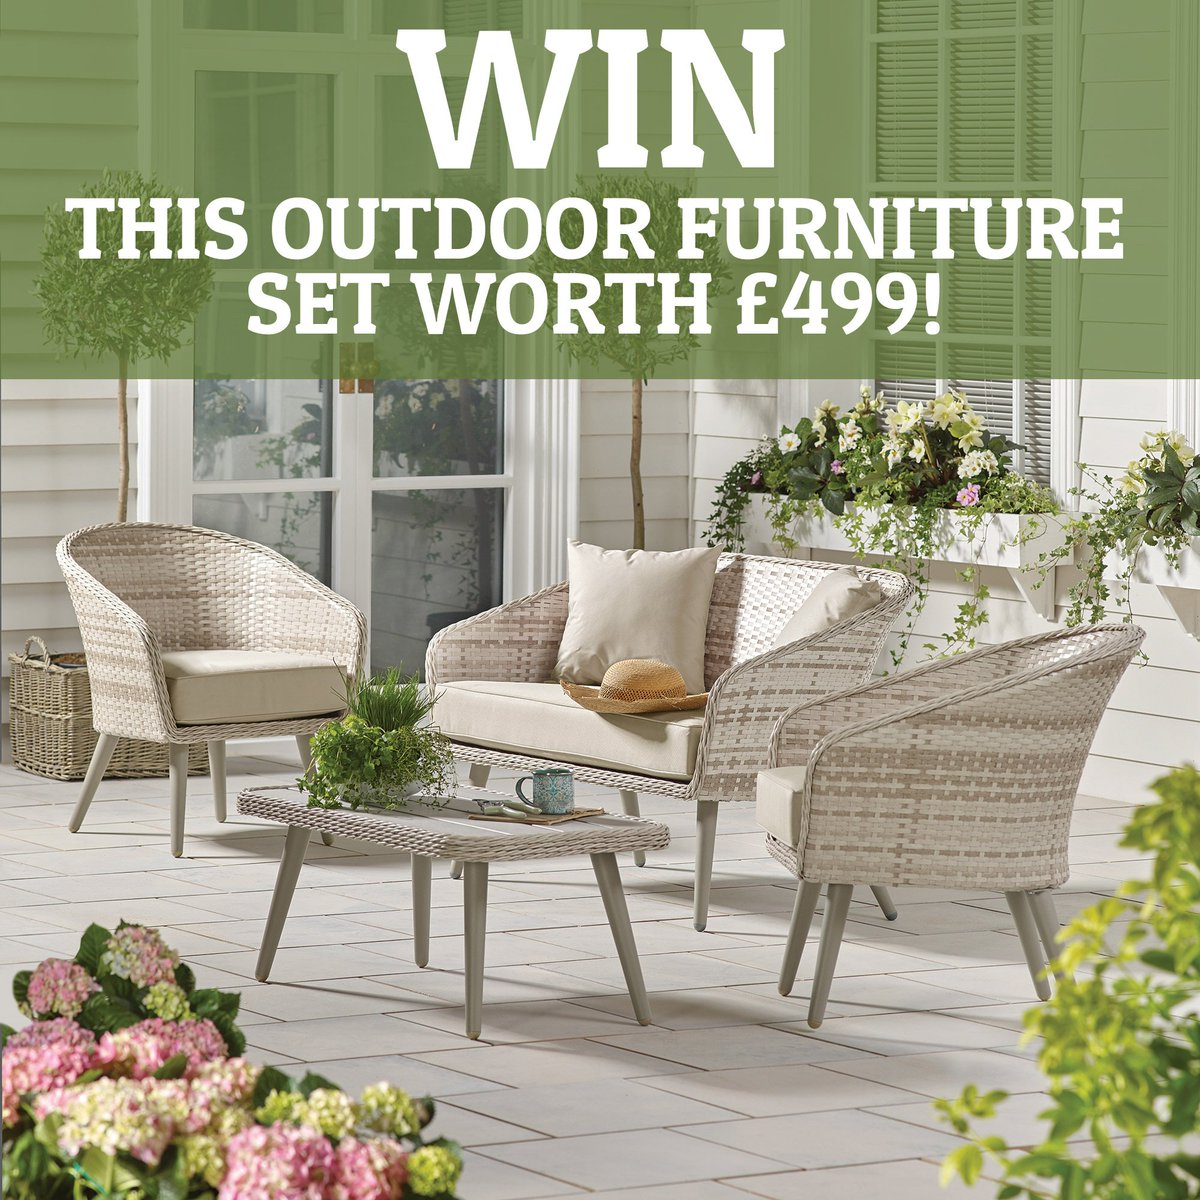 Want to win this beautiful outdoor furniture set? Simply head over to our  Facebook page and tell us who you would invite to your dream garden party >  ... - Dunelm On Twitter: